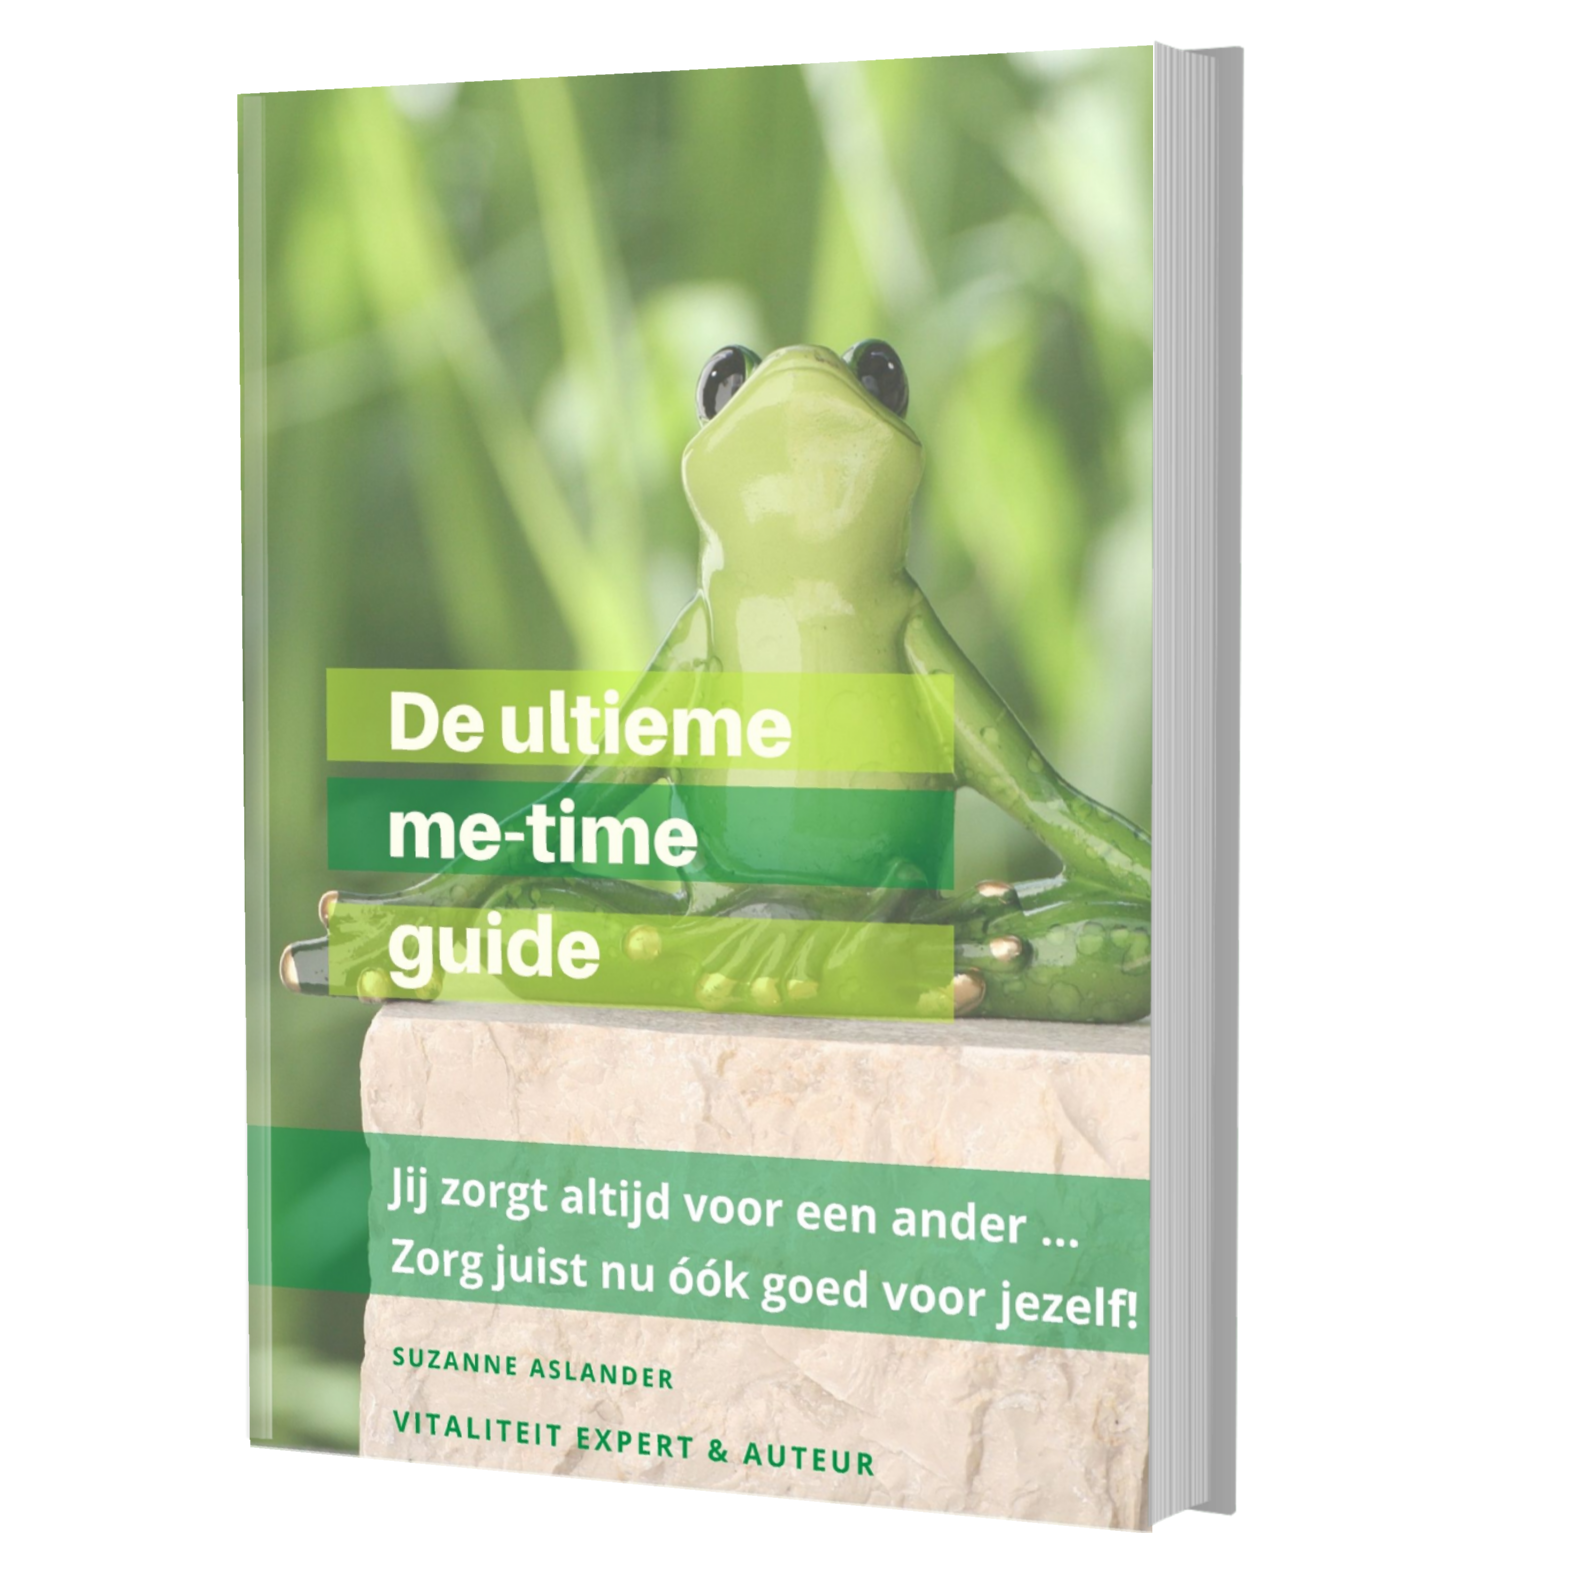 Ultieme me-time guide